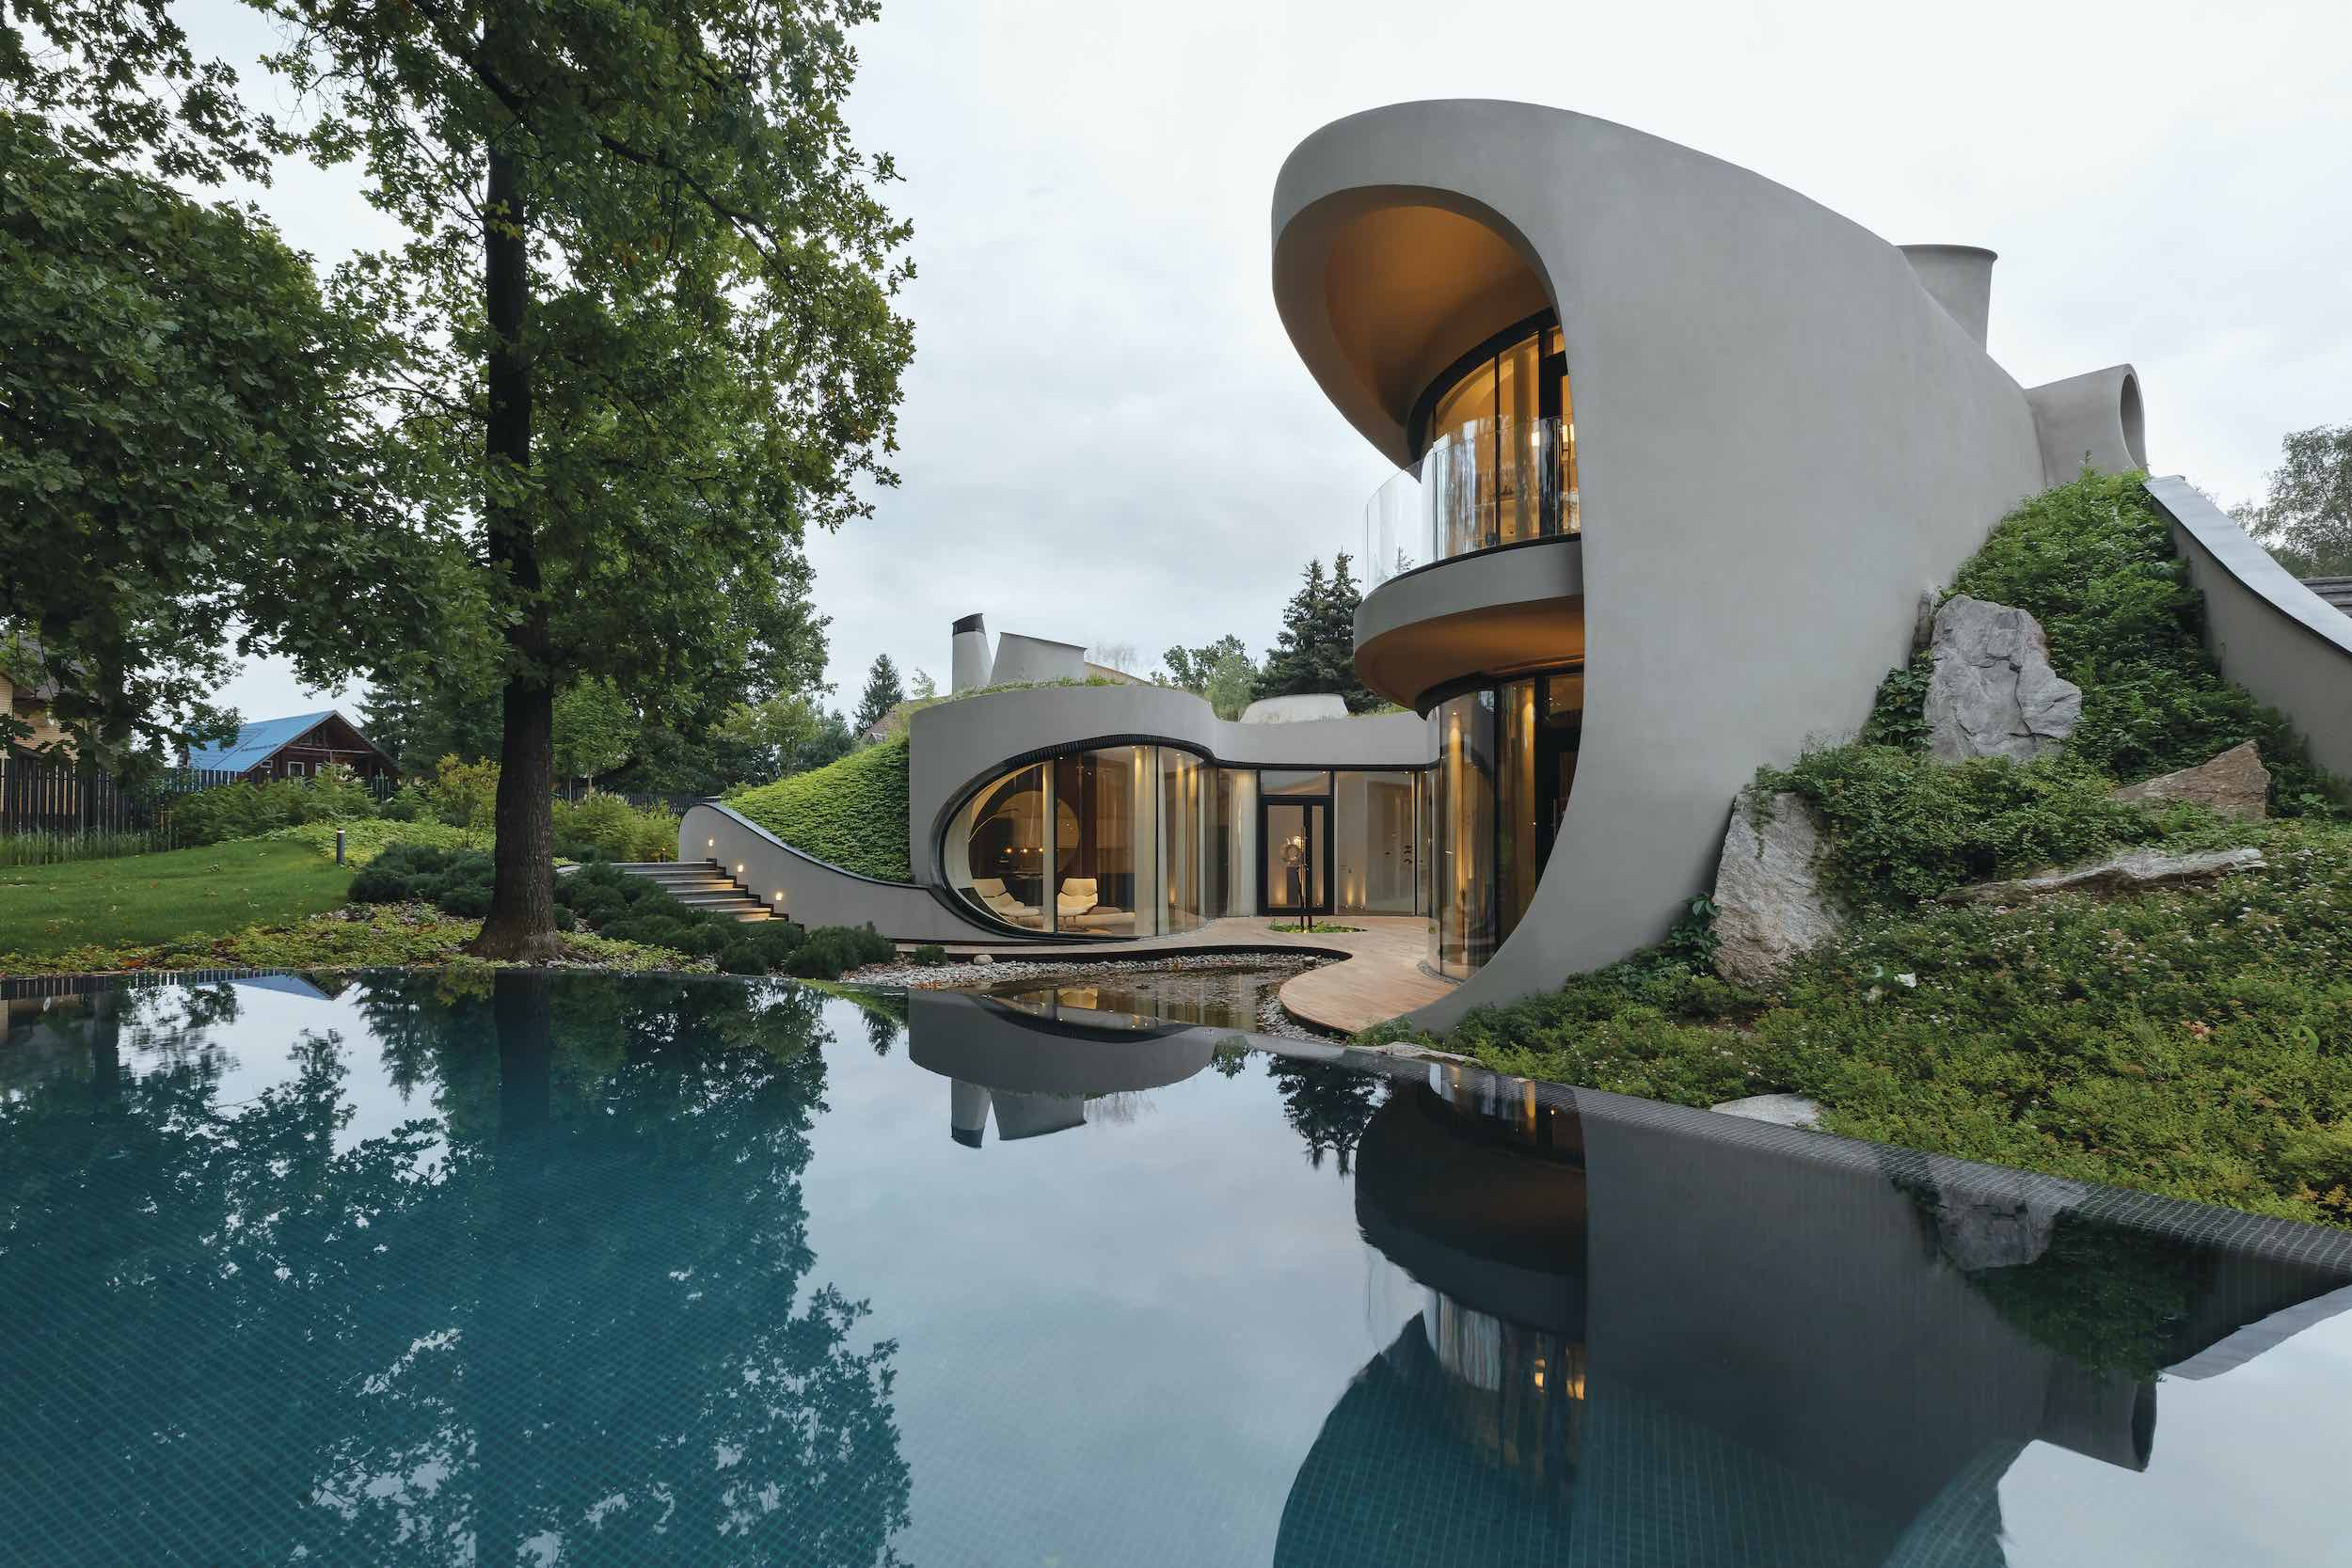 reflection of the organic house in water